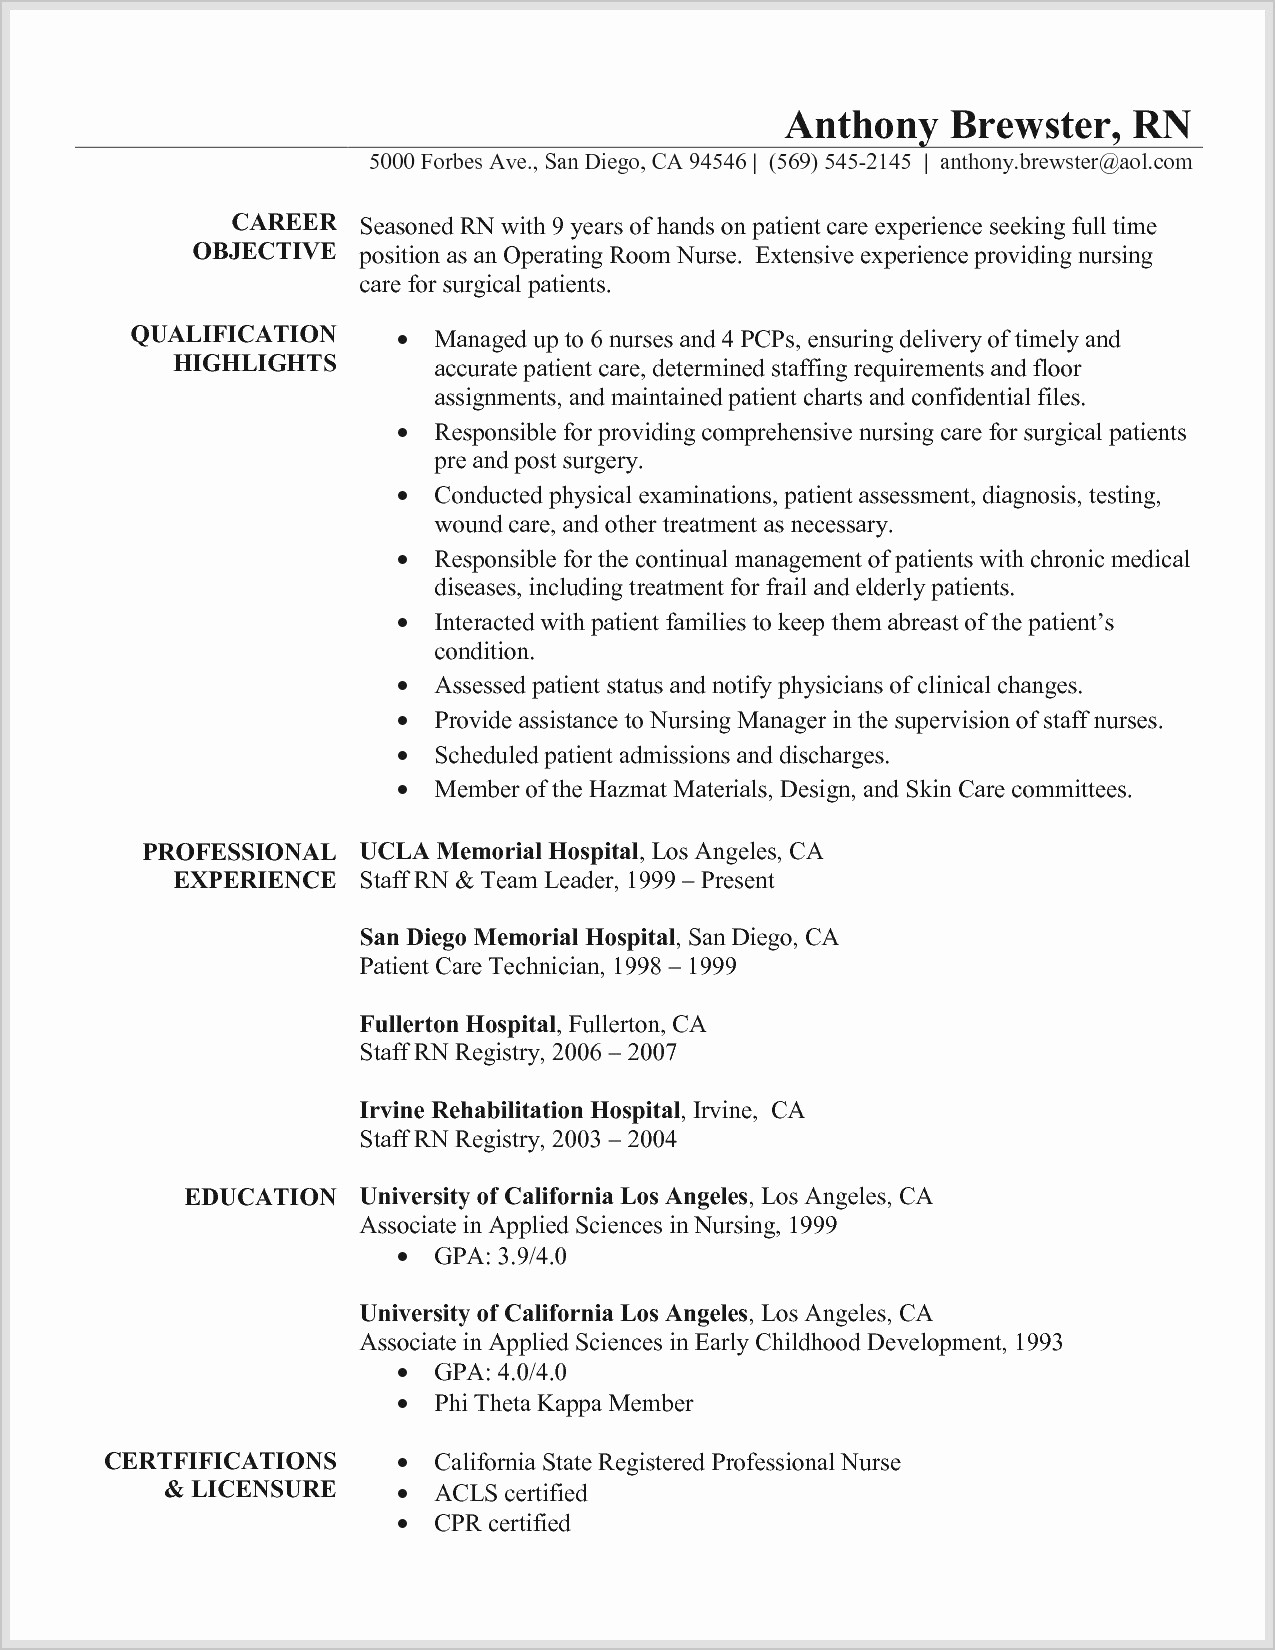 Experienced Nurse Resume Template - Rn Resume Template Beautiful Rn Resume Templates New New Nurse